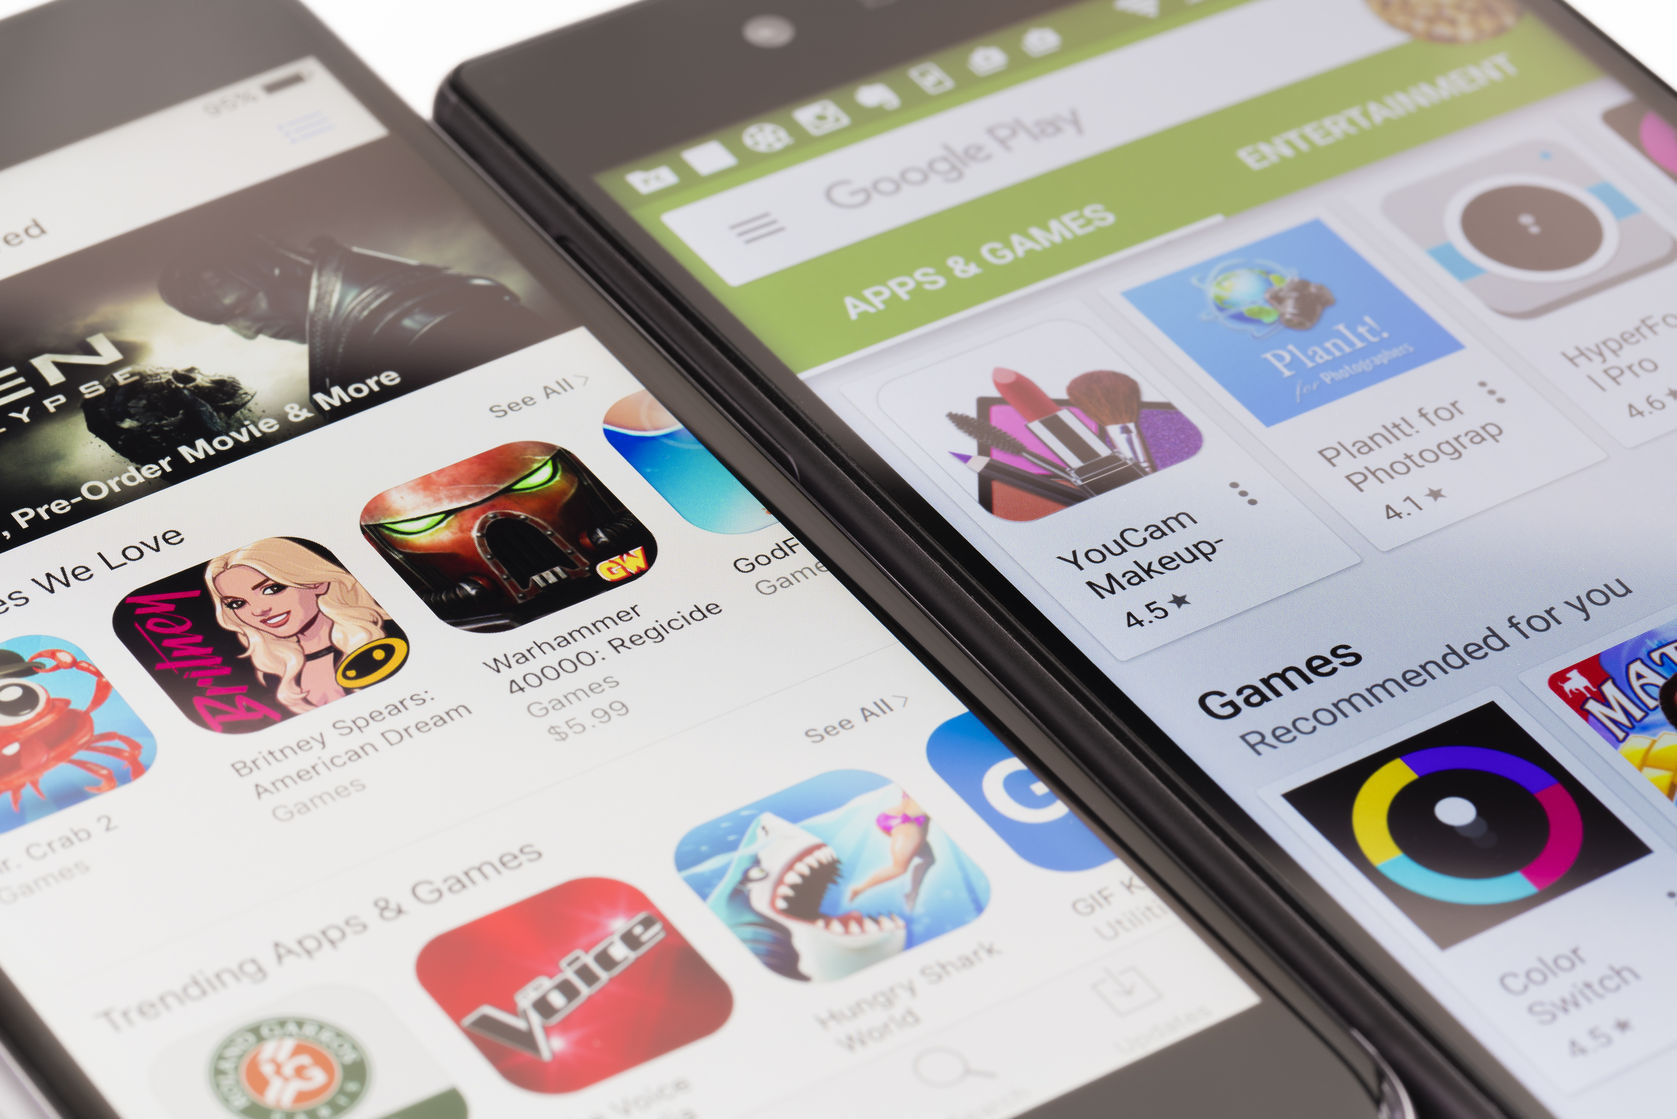 Google Play Store will soon tell you if your Android device is 'certified' or not